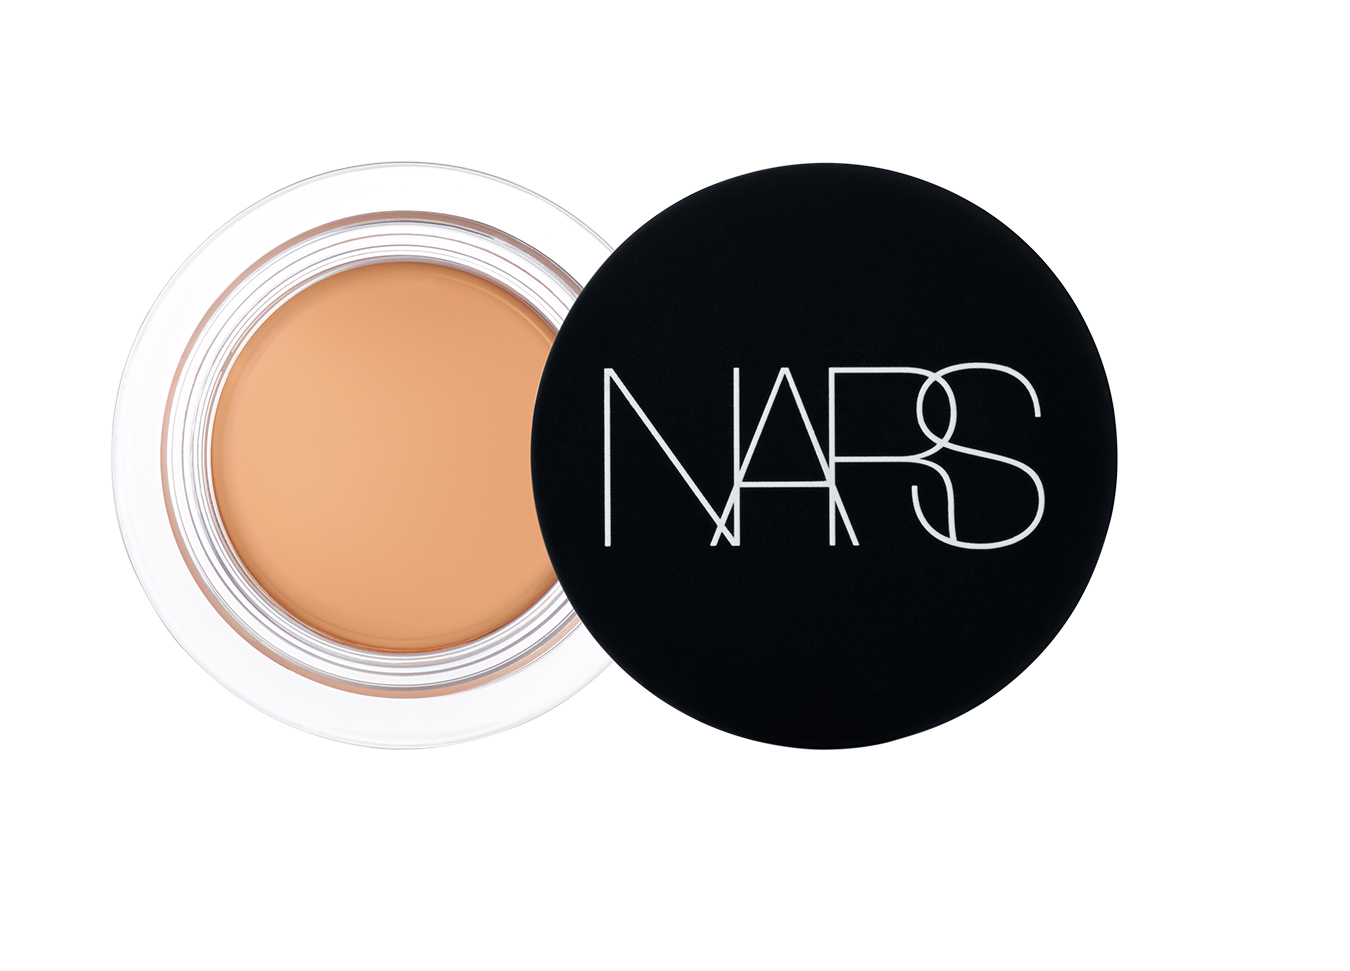 Soft Matte Complete Concealer, Nars. Photo: Nars